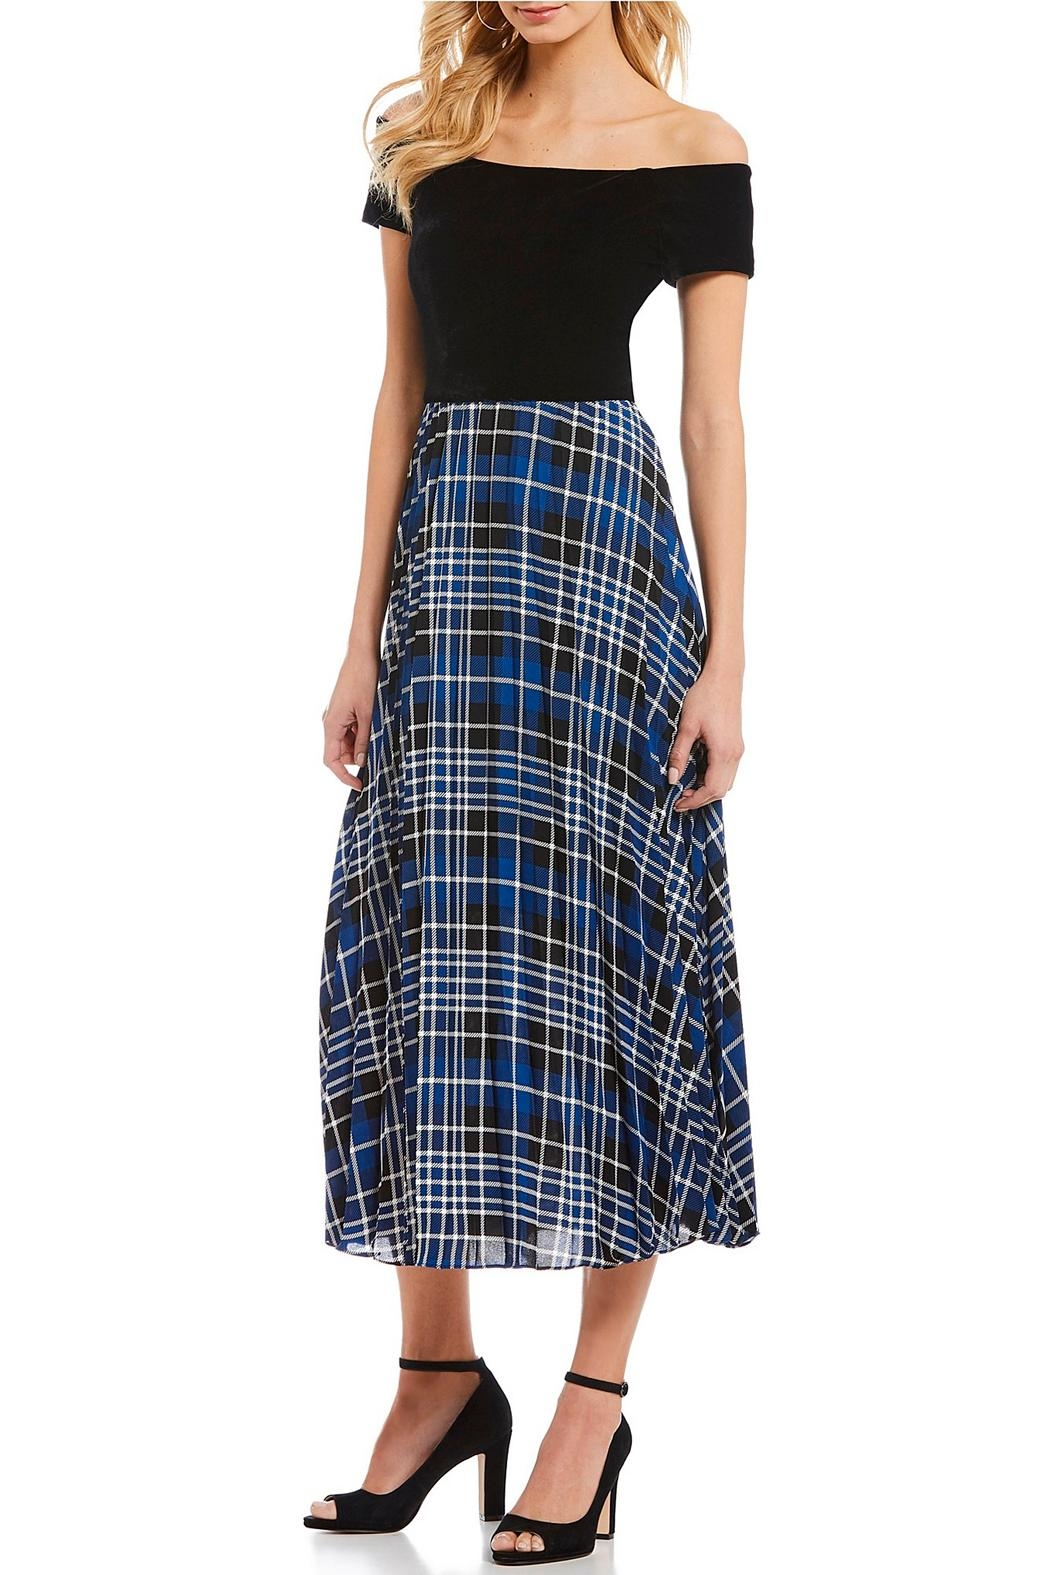 46cf7c0f0ec Donna Morgan Velvet-Bodice Plaid Skirt from New Jersey by Le ...